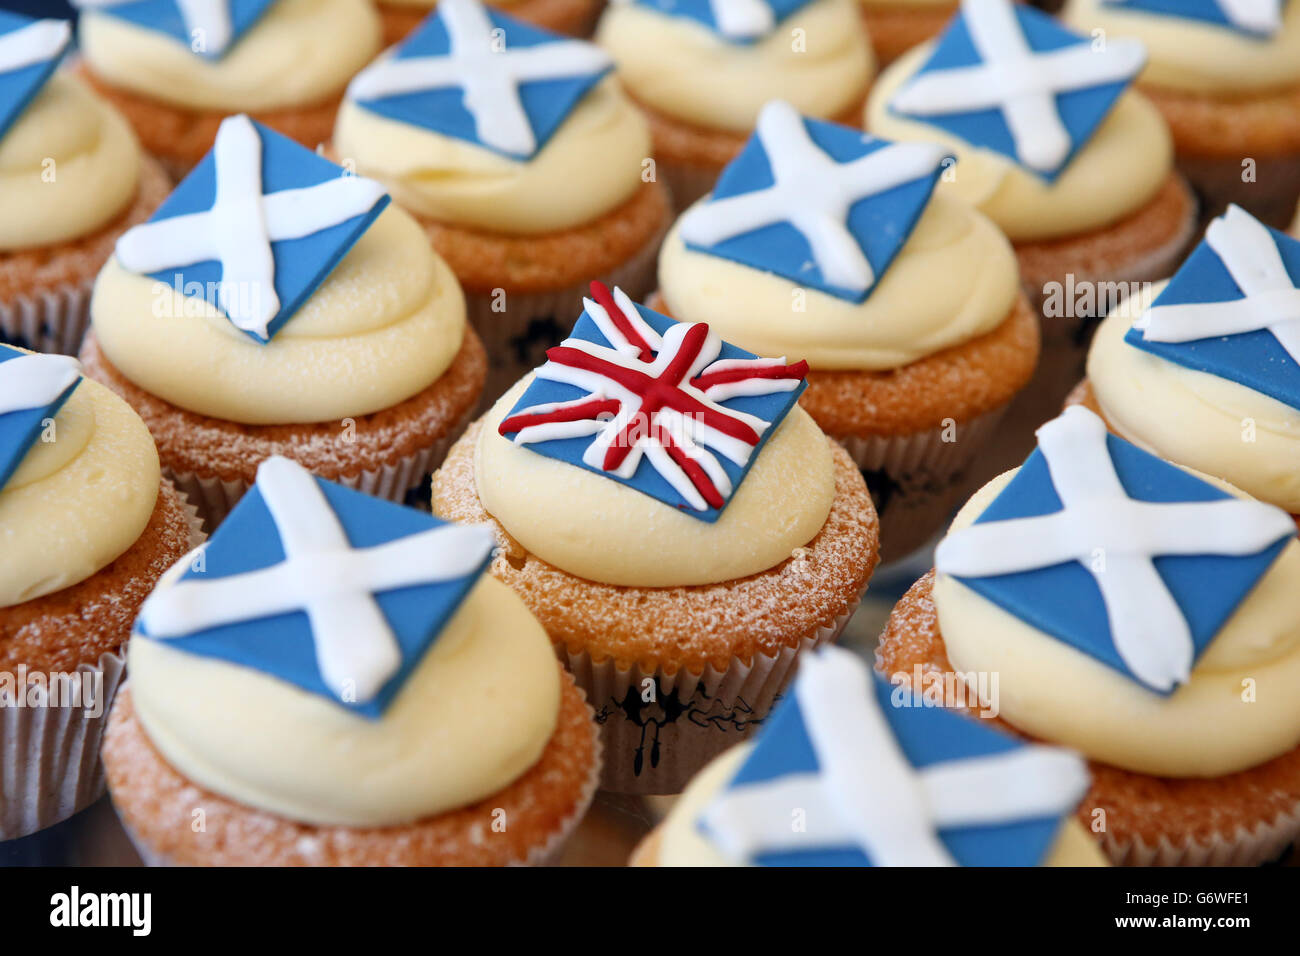 Scottish Independence Referendum - Cuckoo's - Yes, No or Undecided Cupcake - Edinburgh - Stock Image